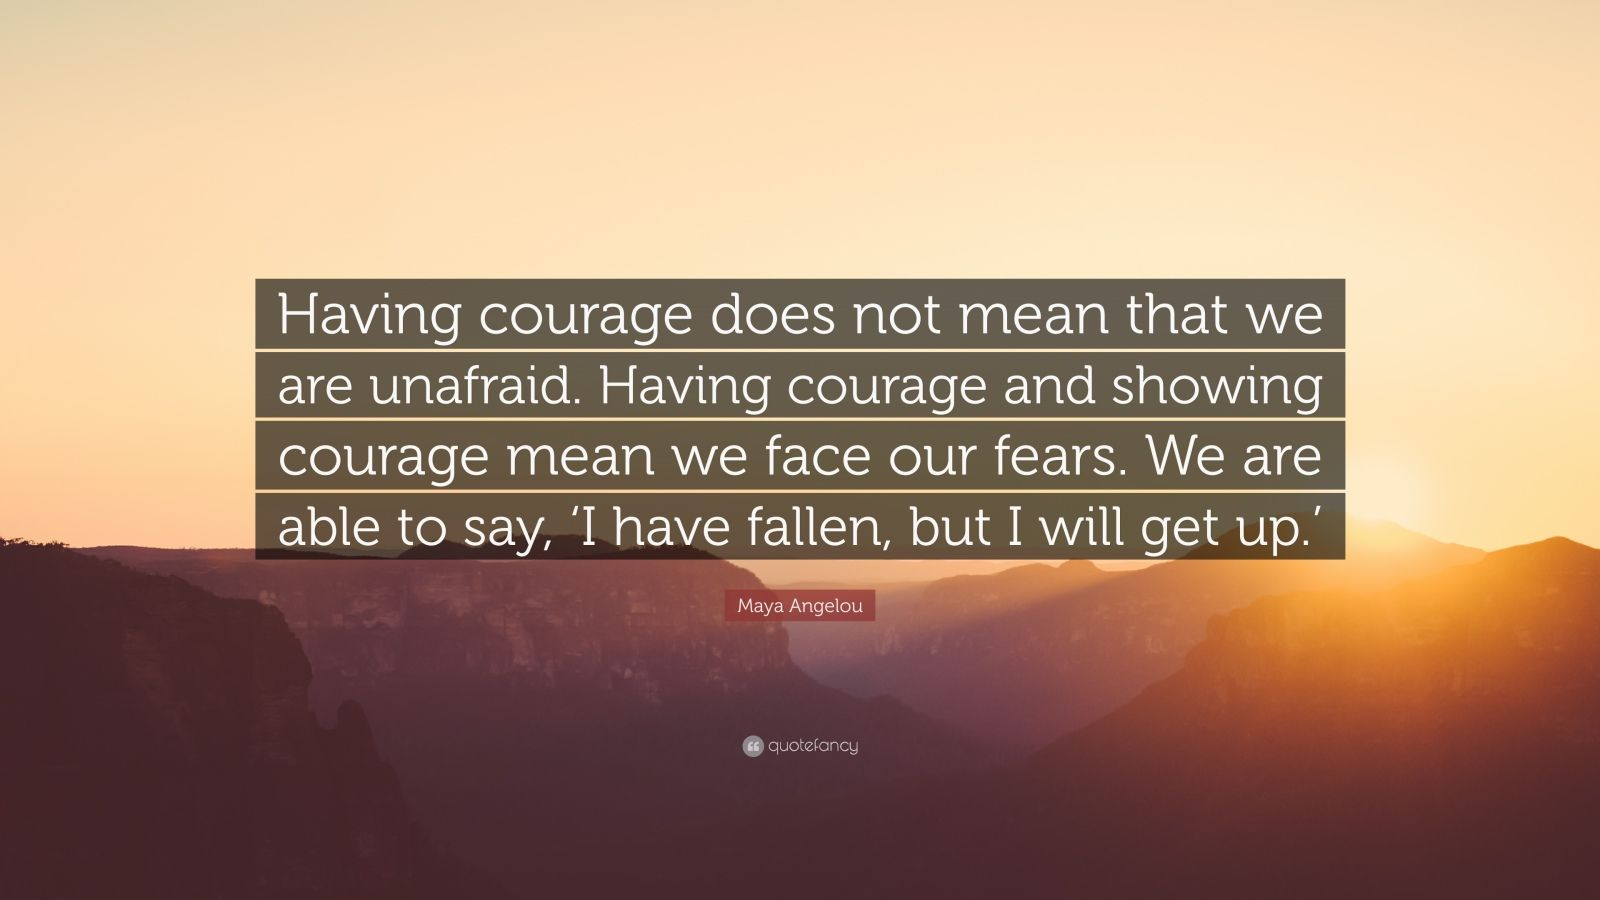 "Maya Angelou Quote: ""Having courage does not mean that we are unafraid. Having courage and showing courage mean we face our fears. We are able to say, 'I have fallen, but I will get up.'"""